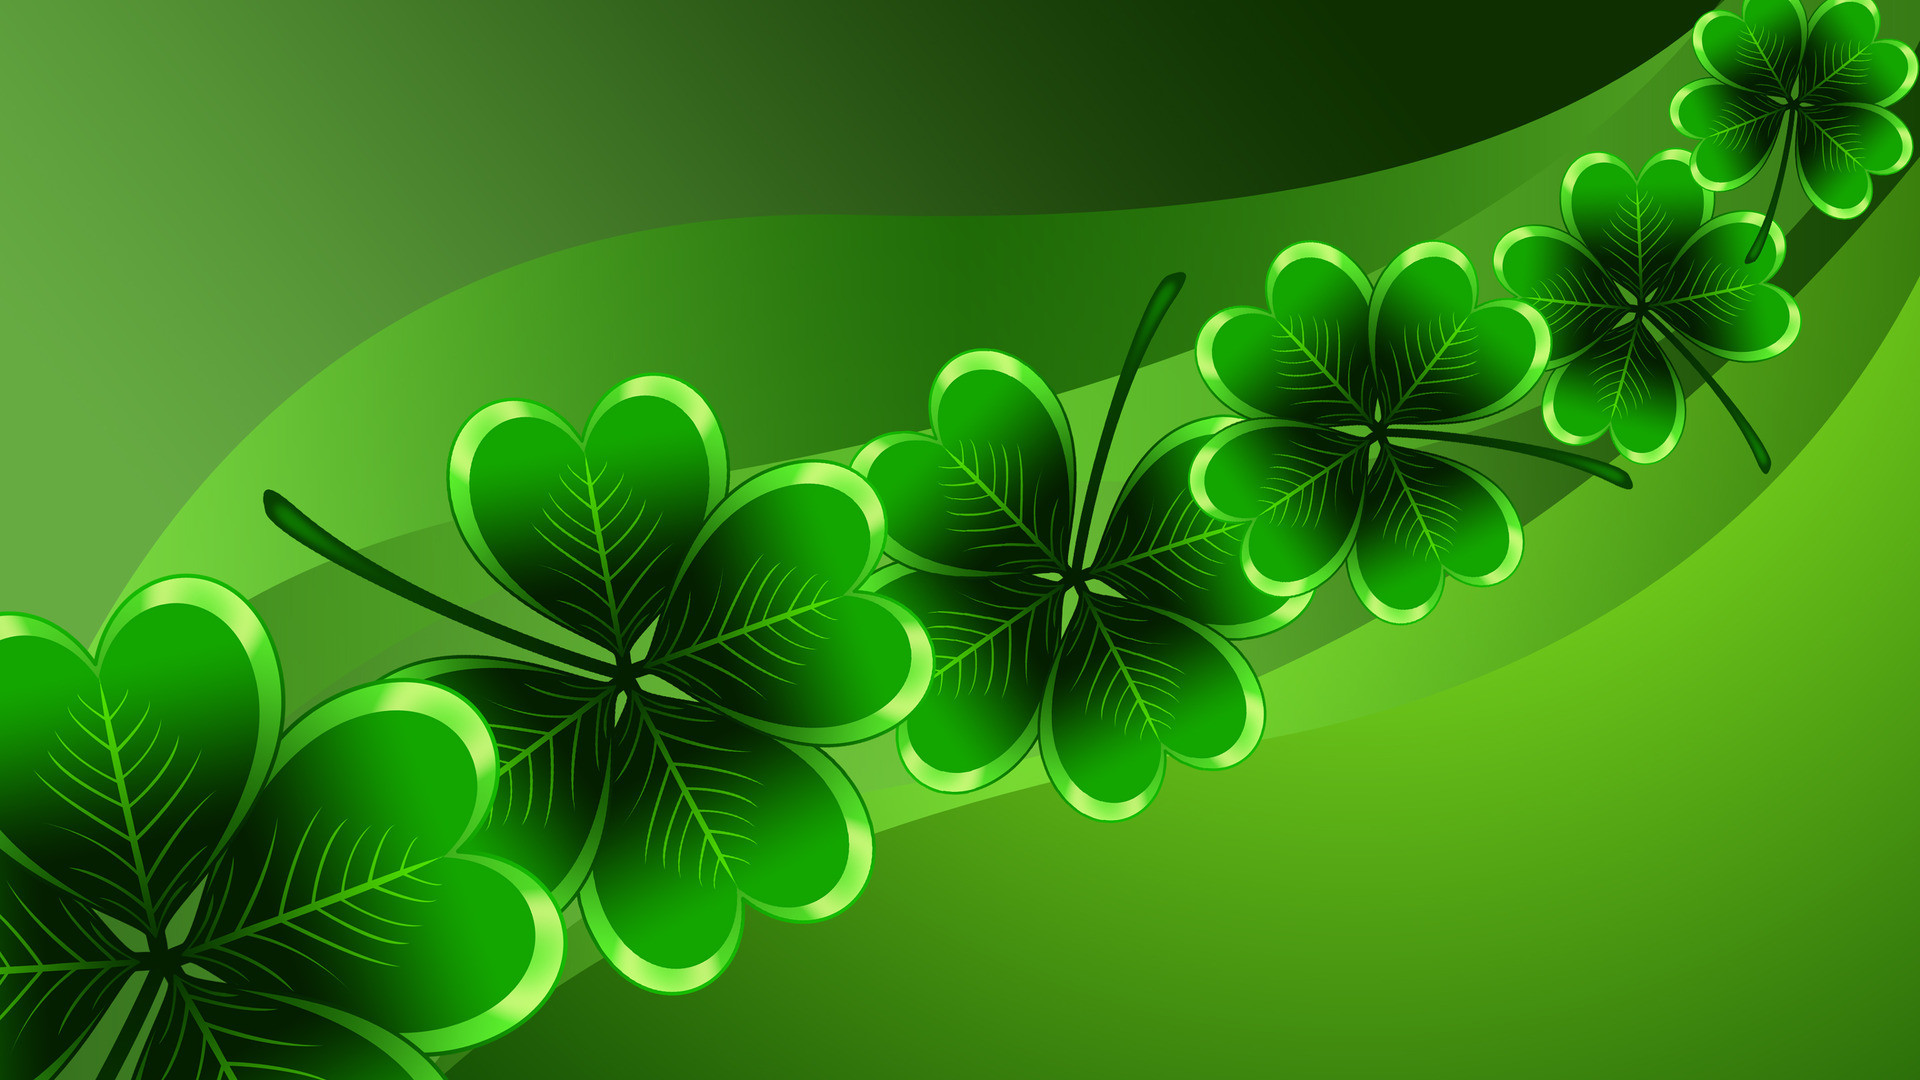 1920x1080 Saint Patrick's Day HD Wallpaper  Saint ...